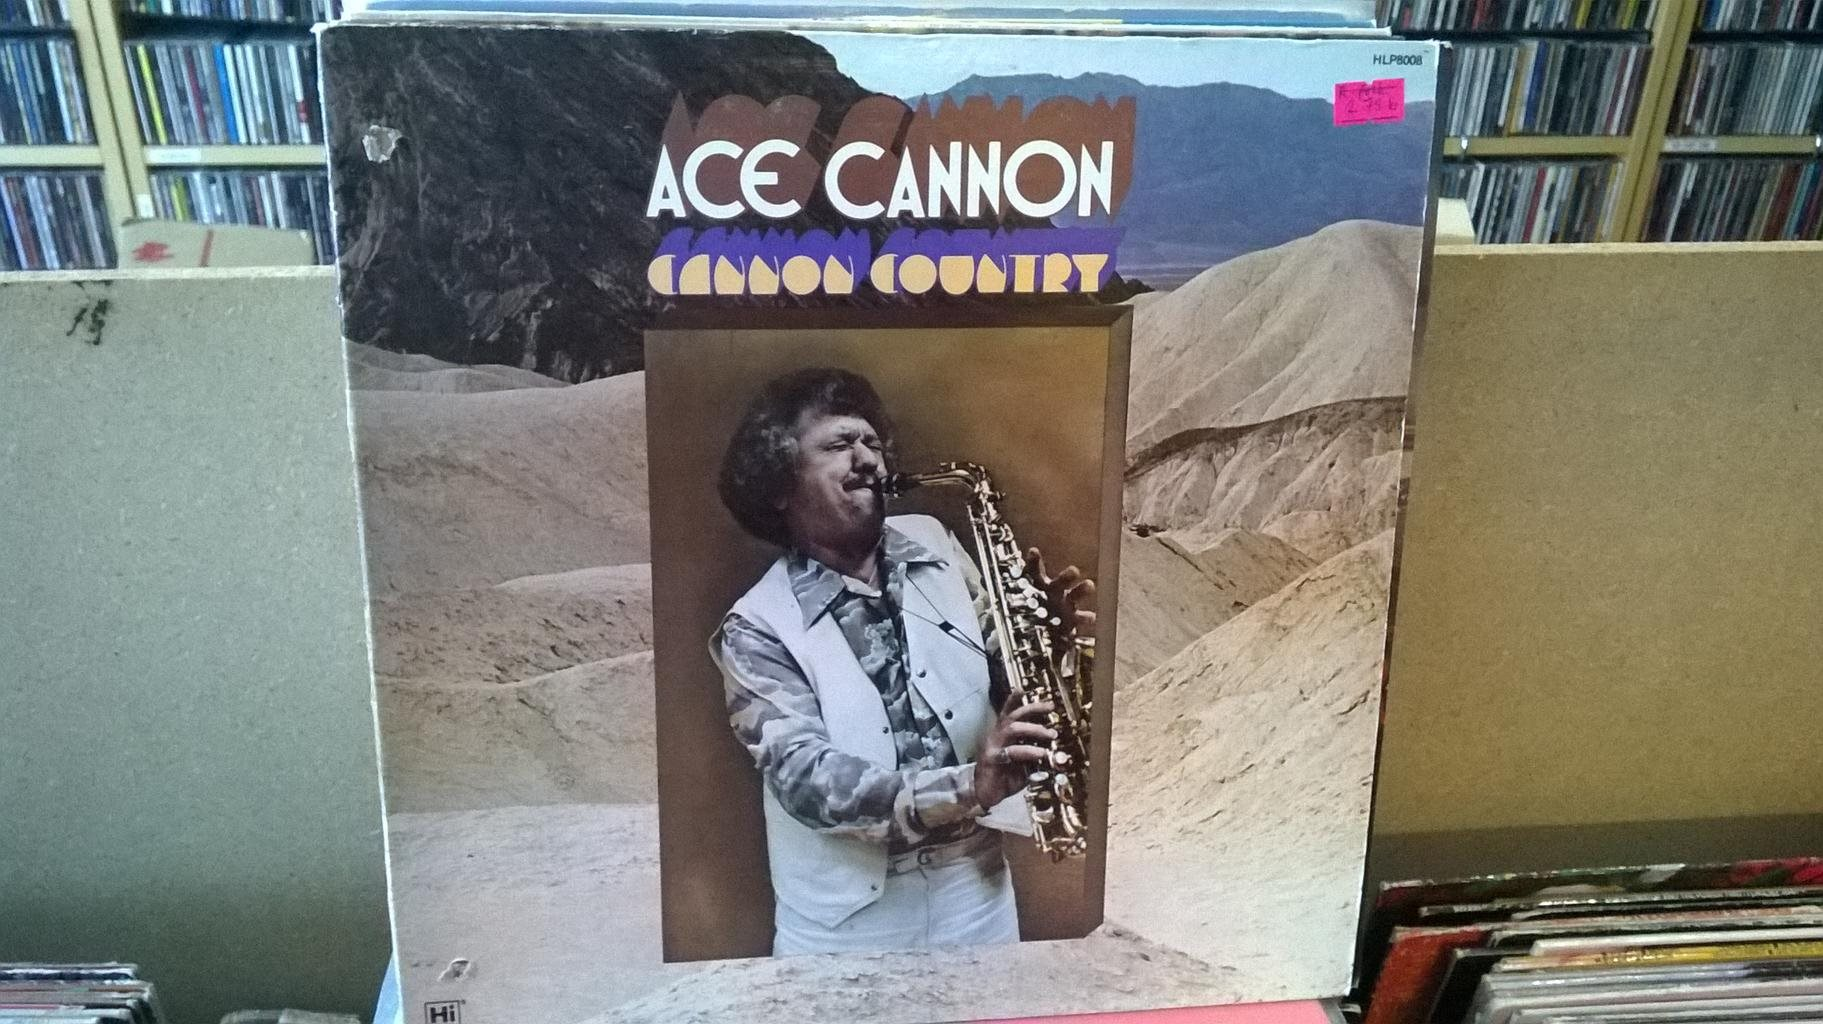 Ace Cannon - Cannon Country